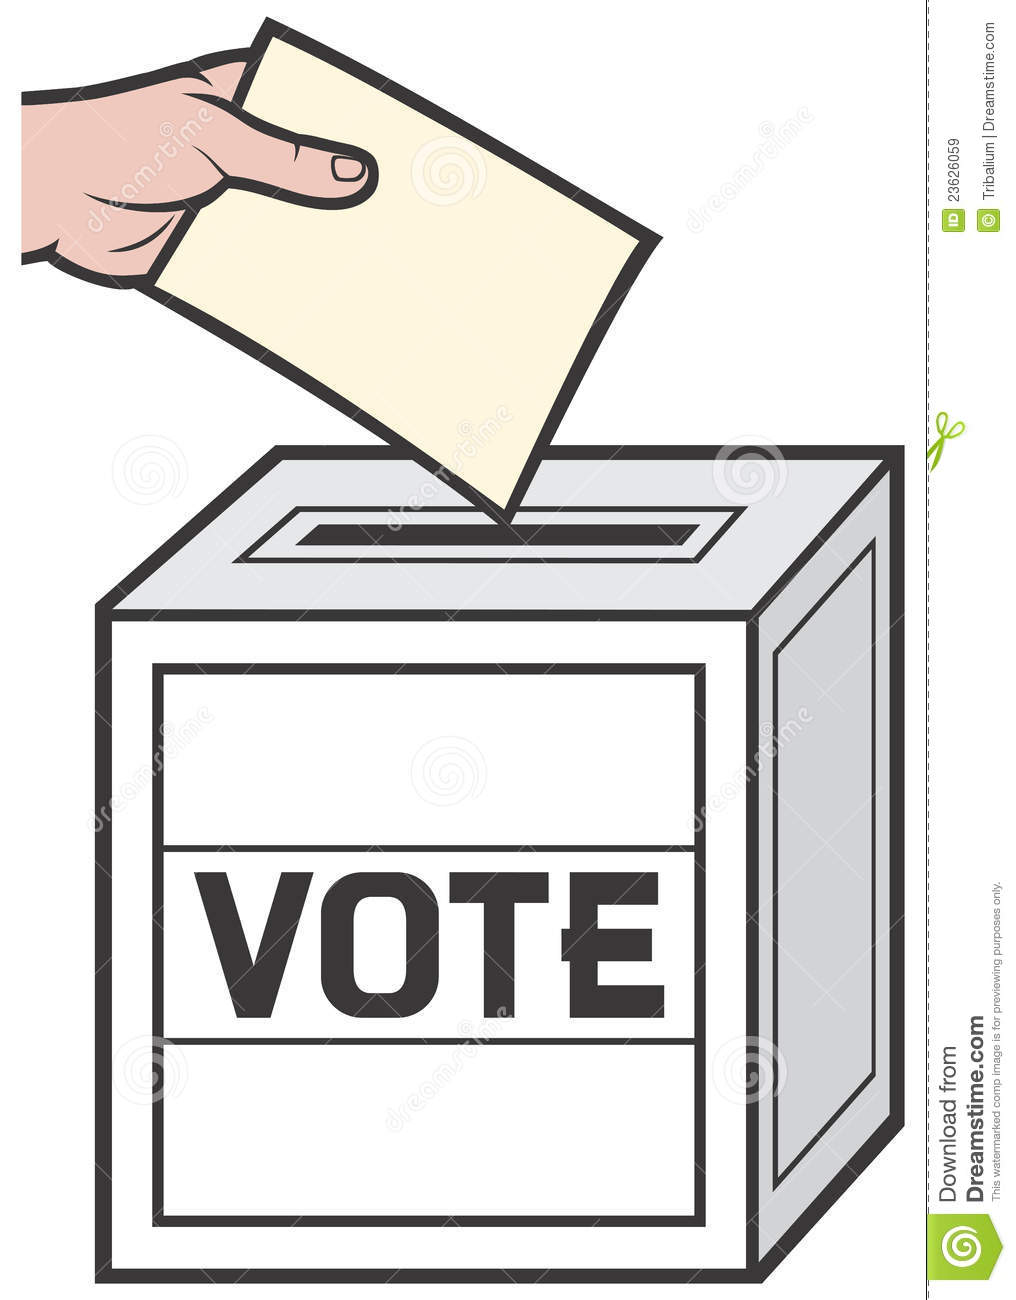 free clipart vote yes - photo #48